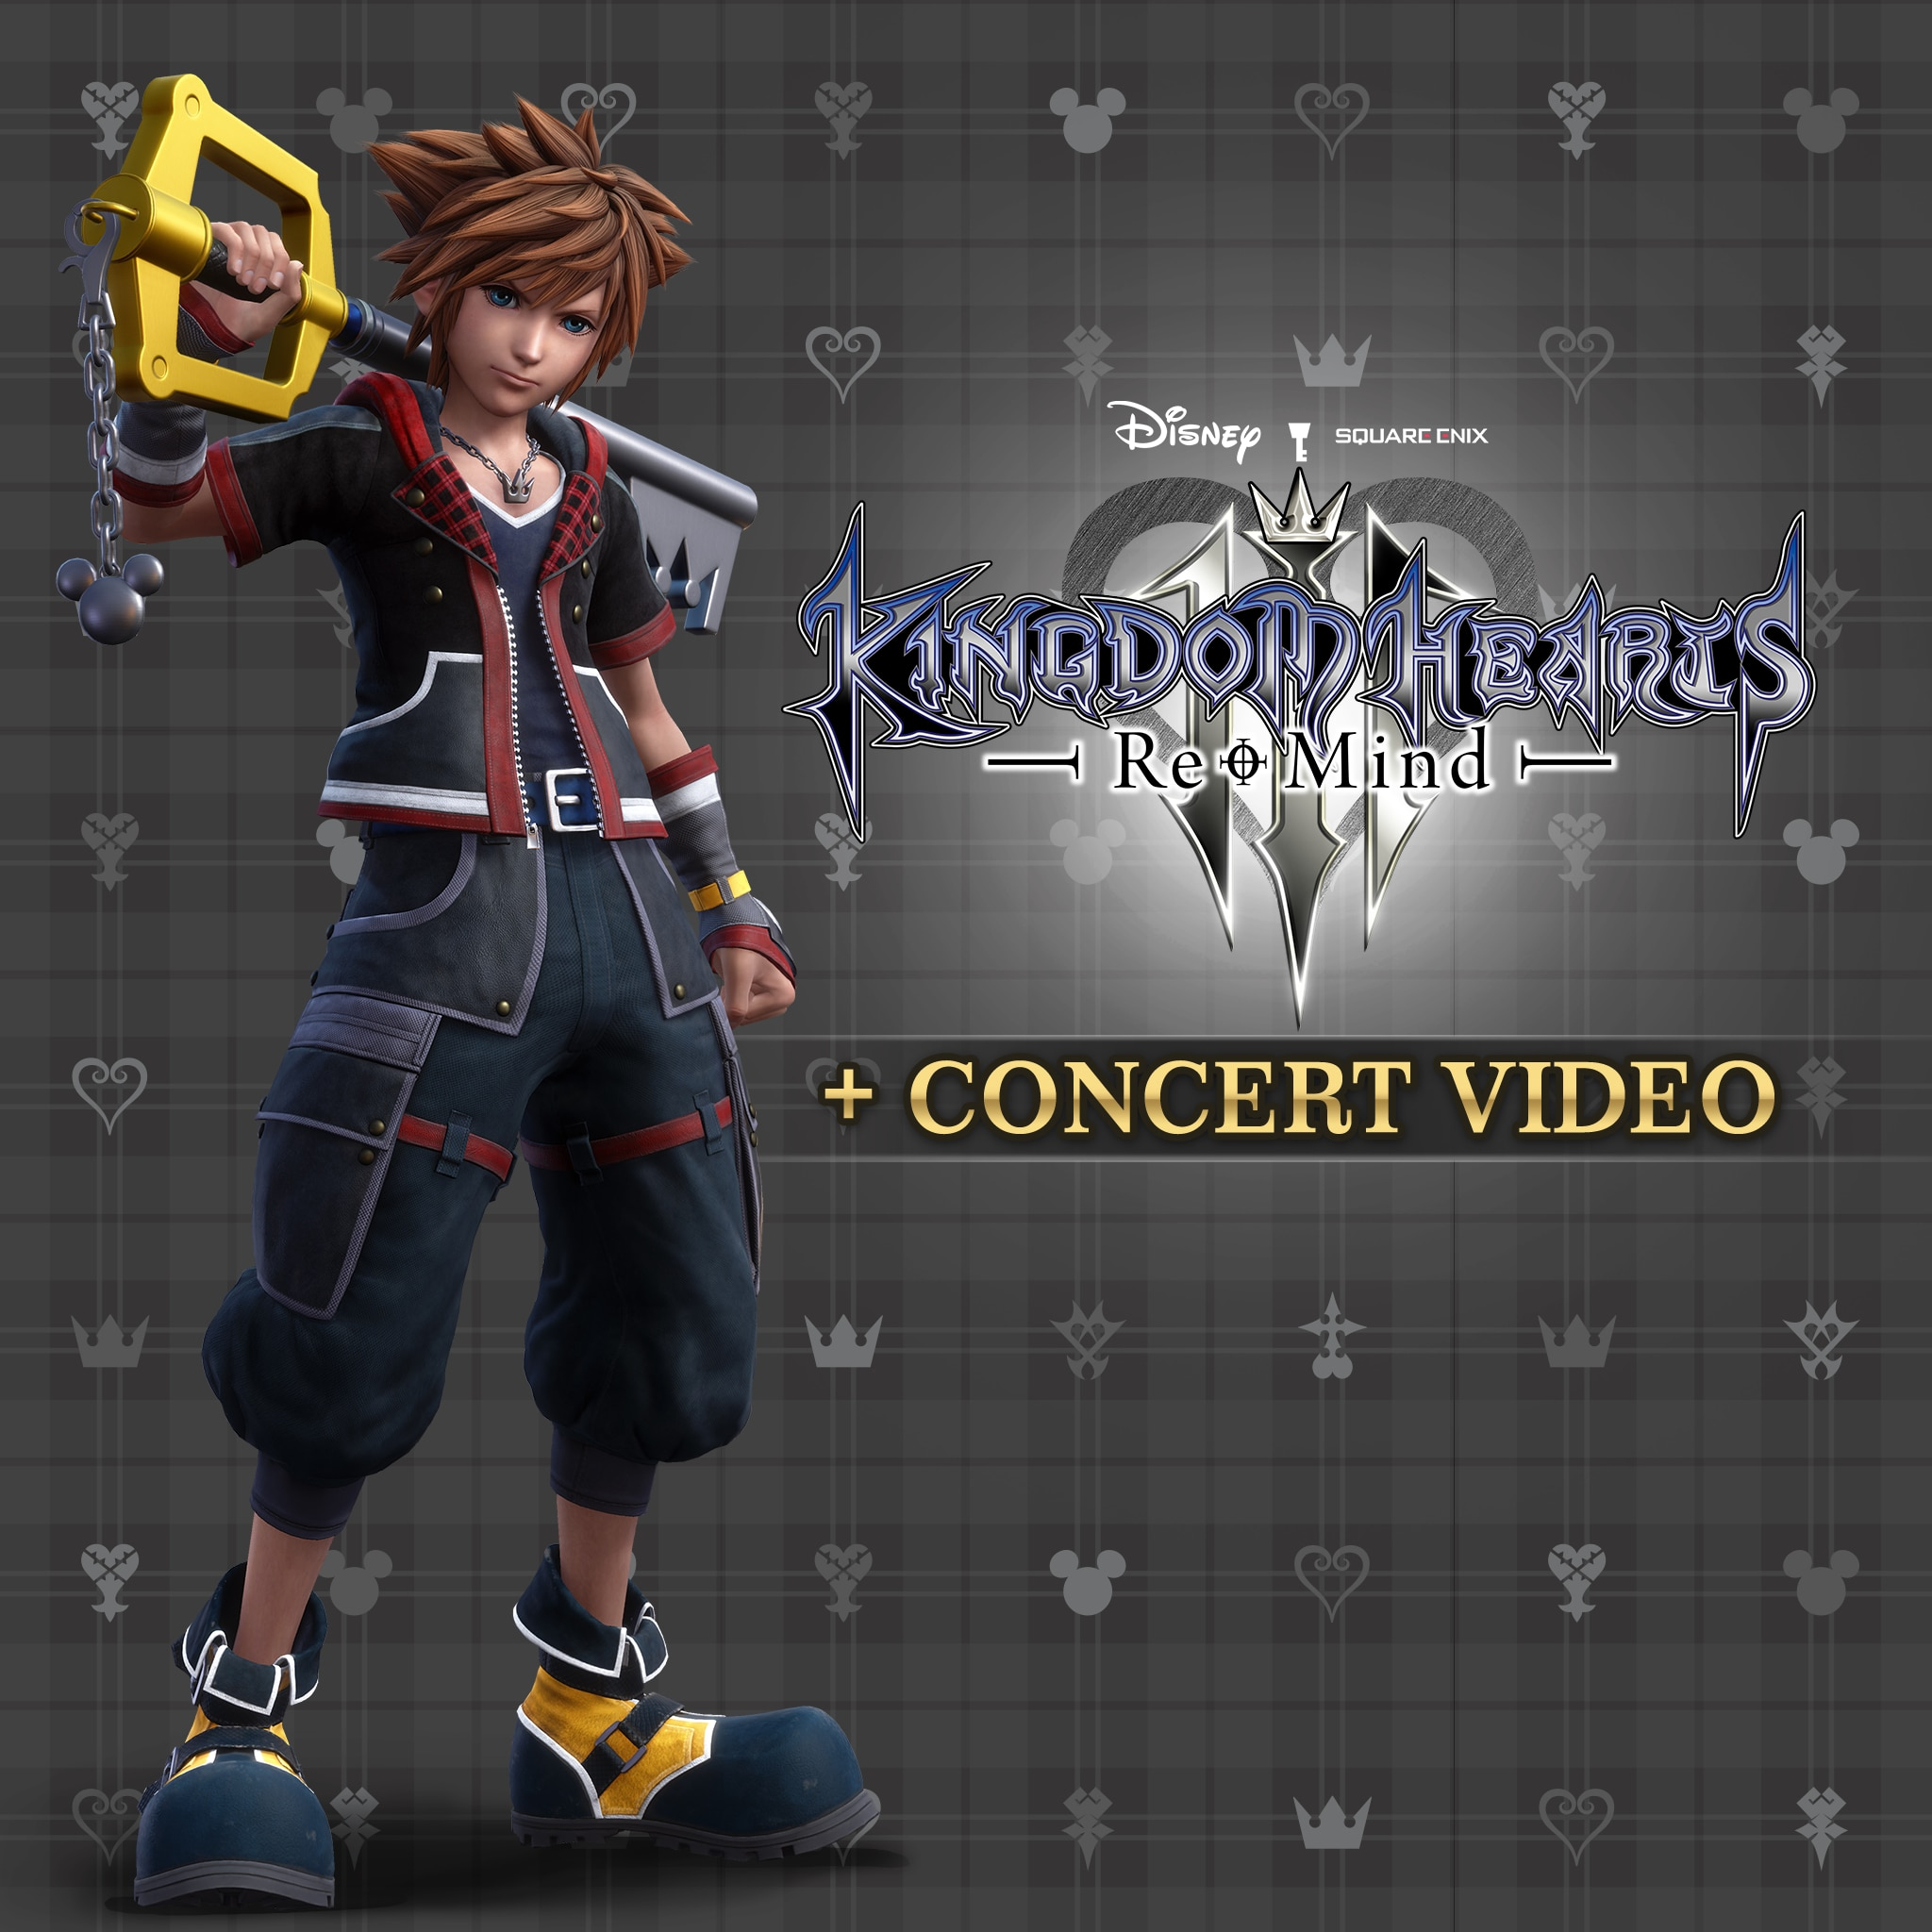 KINGDOM HEARTS III Re Mind + Concert Video